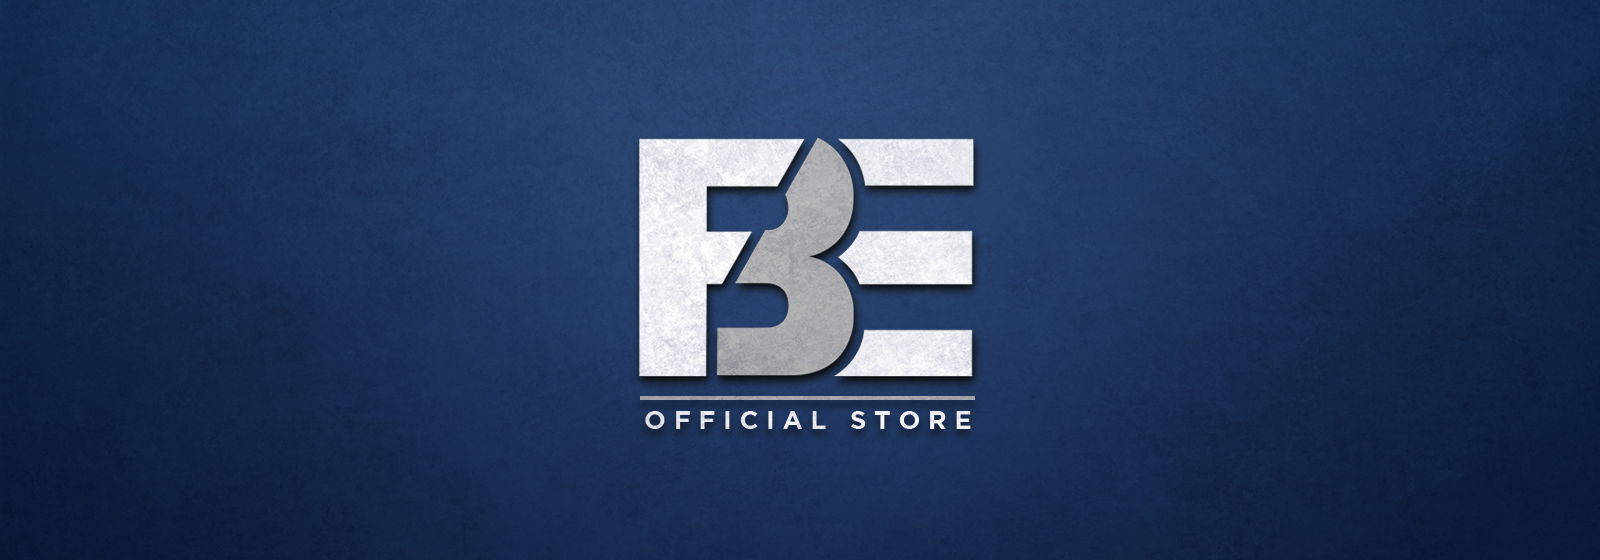 FBE Store Store